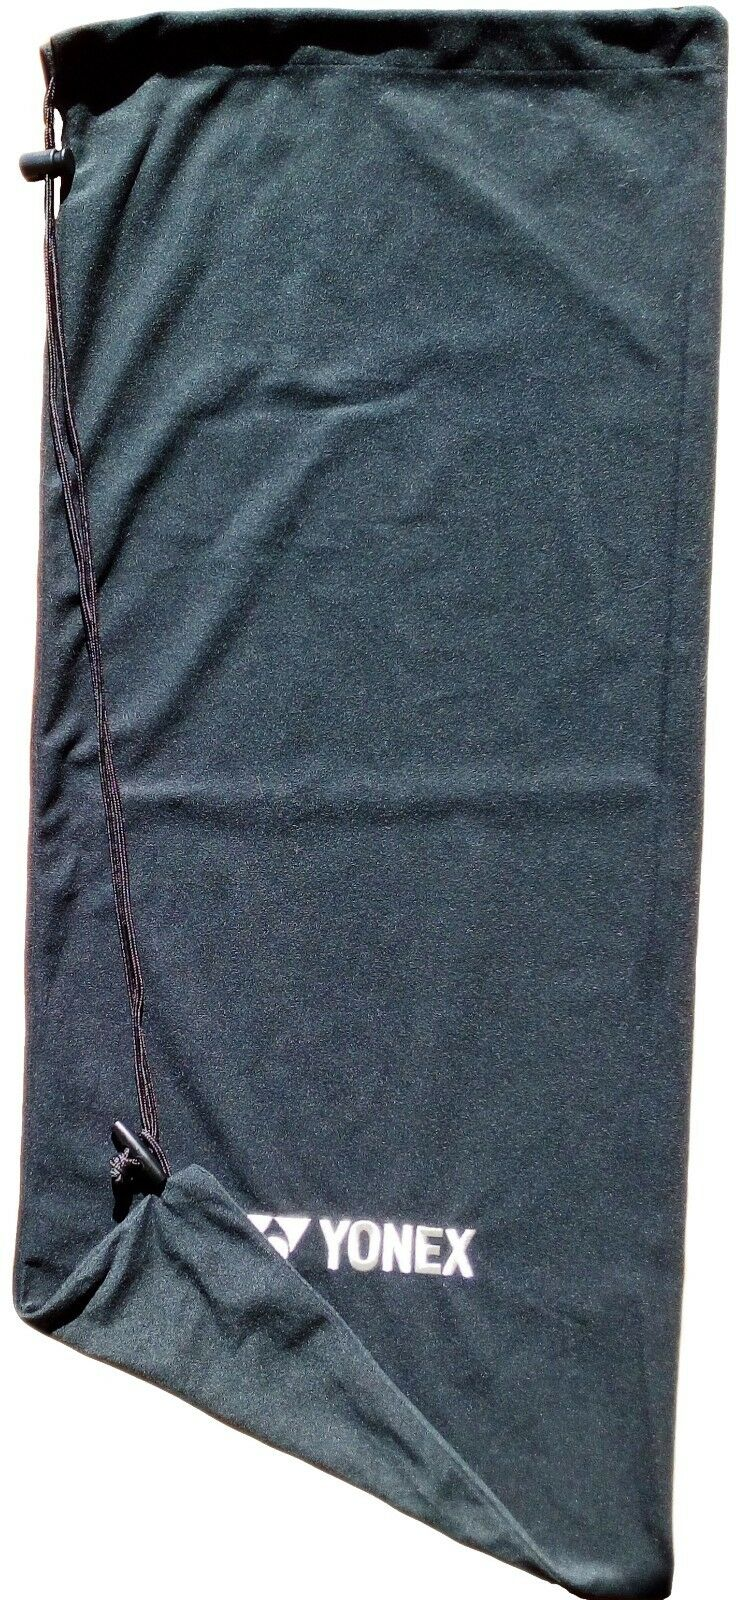 YONEX original tennis racket fabric bag, black , size 31 x 13.5inch (79 x 34cm)